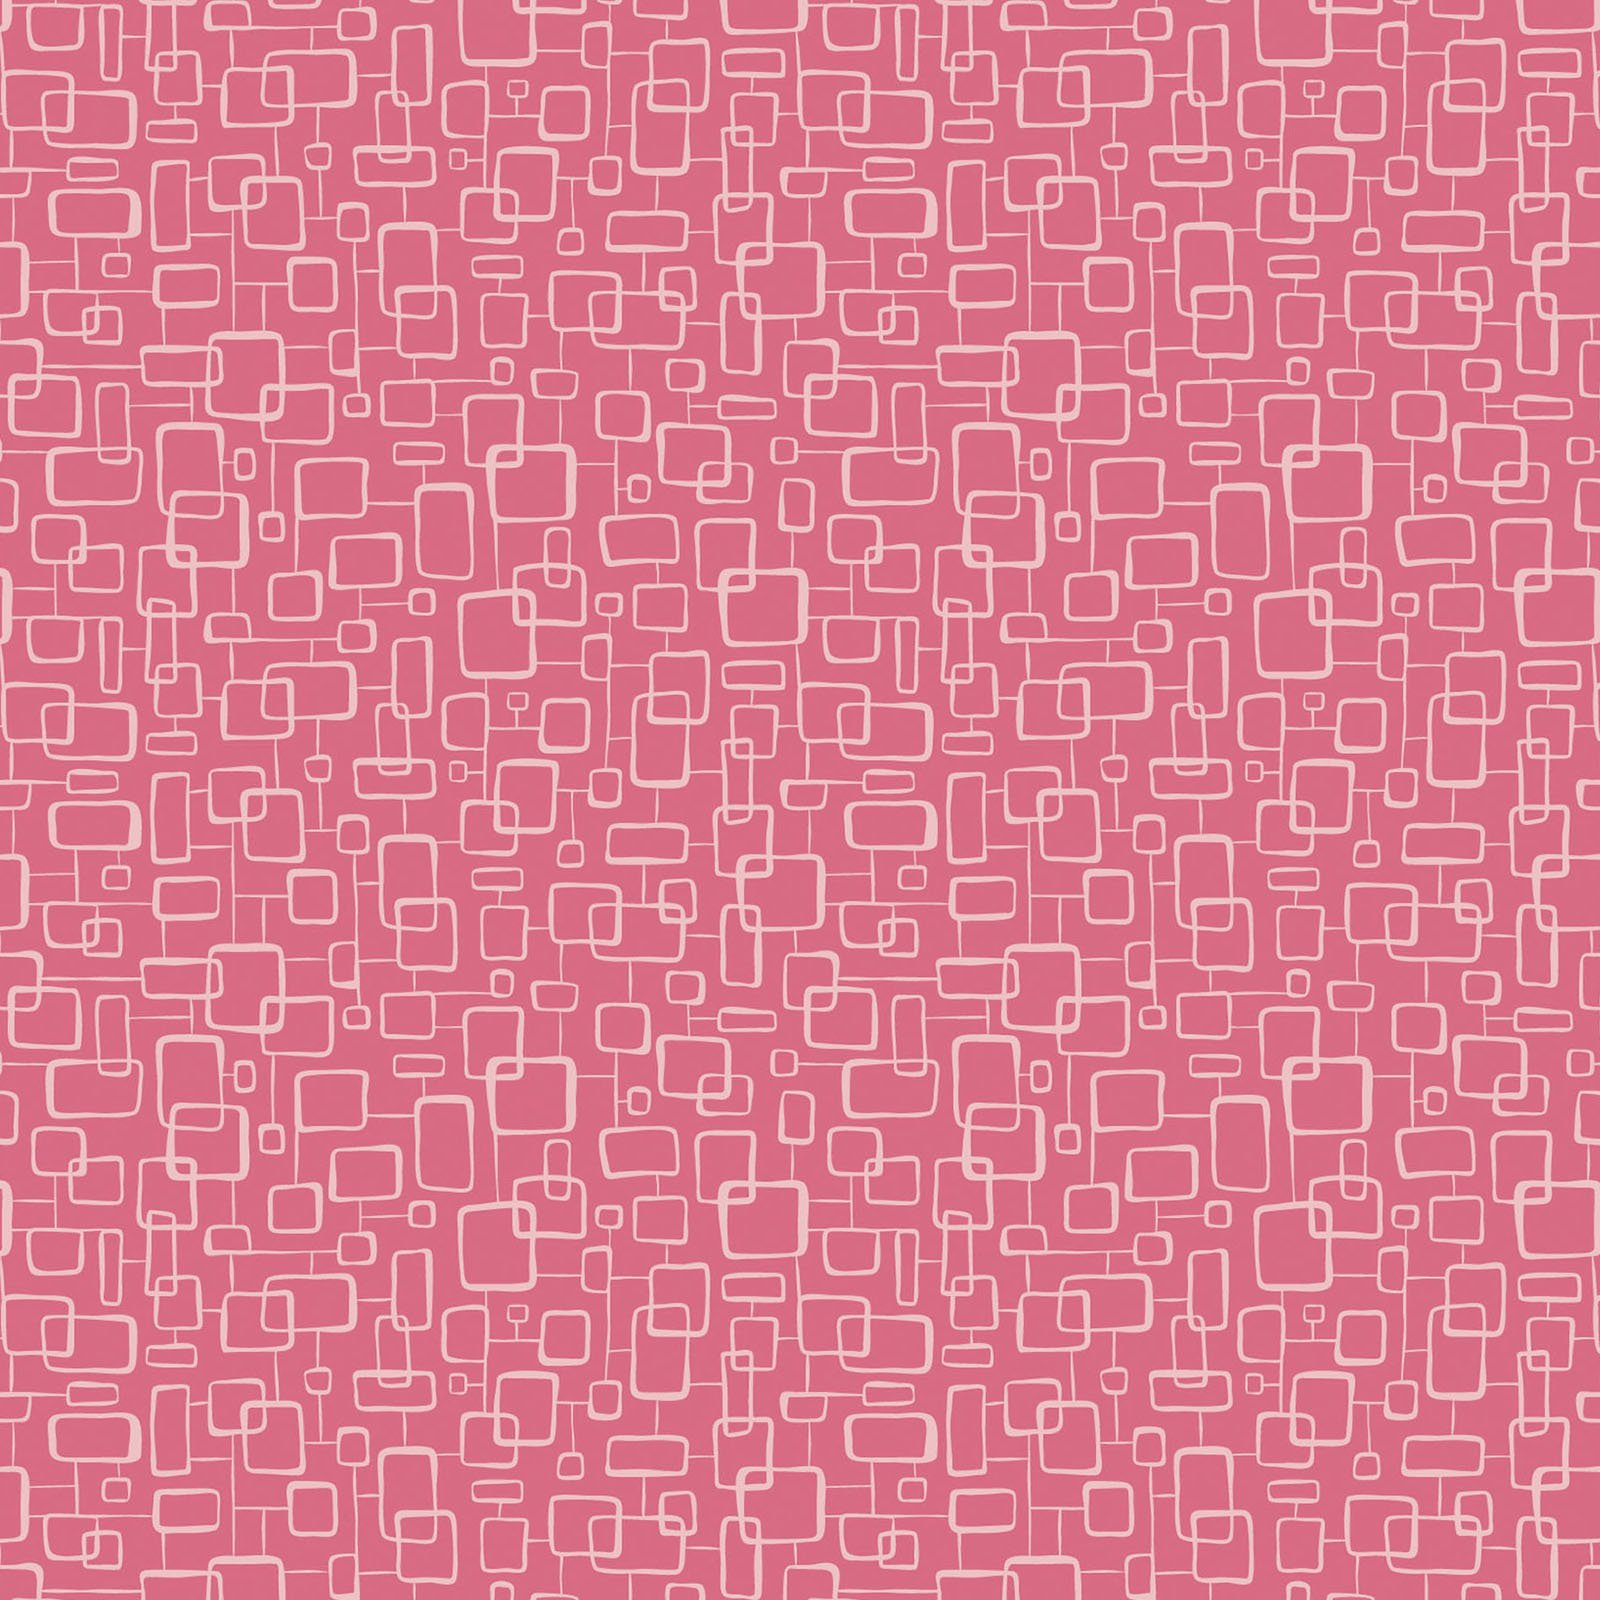 WHIM-4411 P - WHIMSY BY HANG TIGHT STUDIO ON THE QUAD PINK